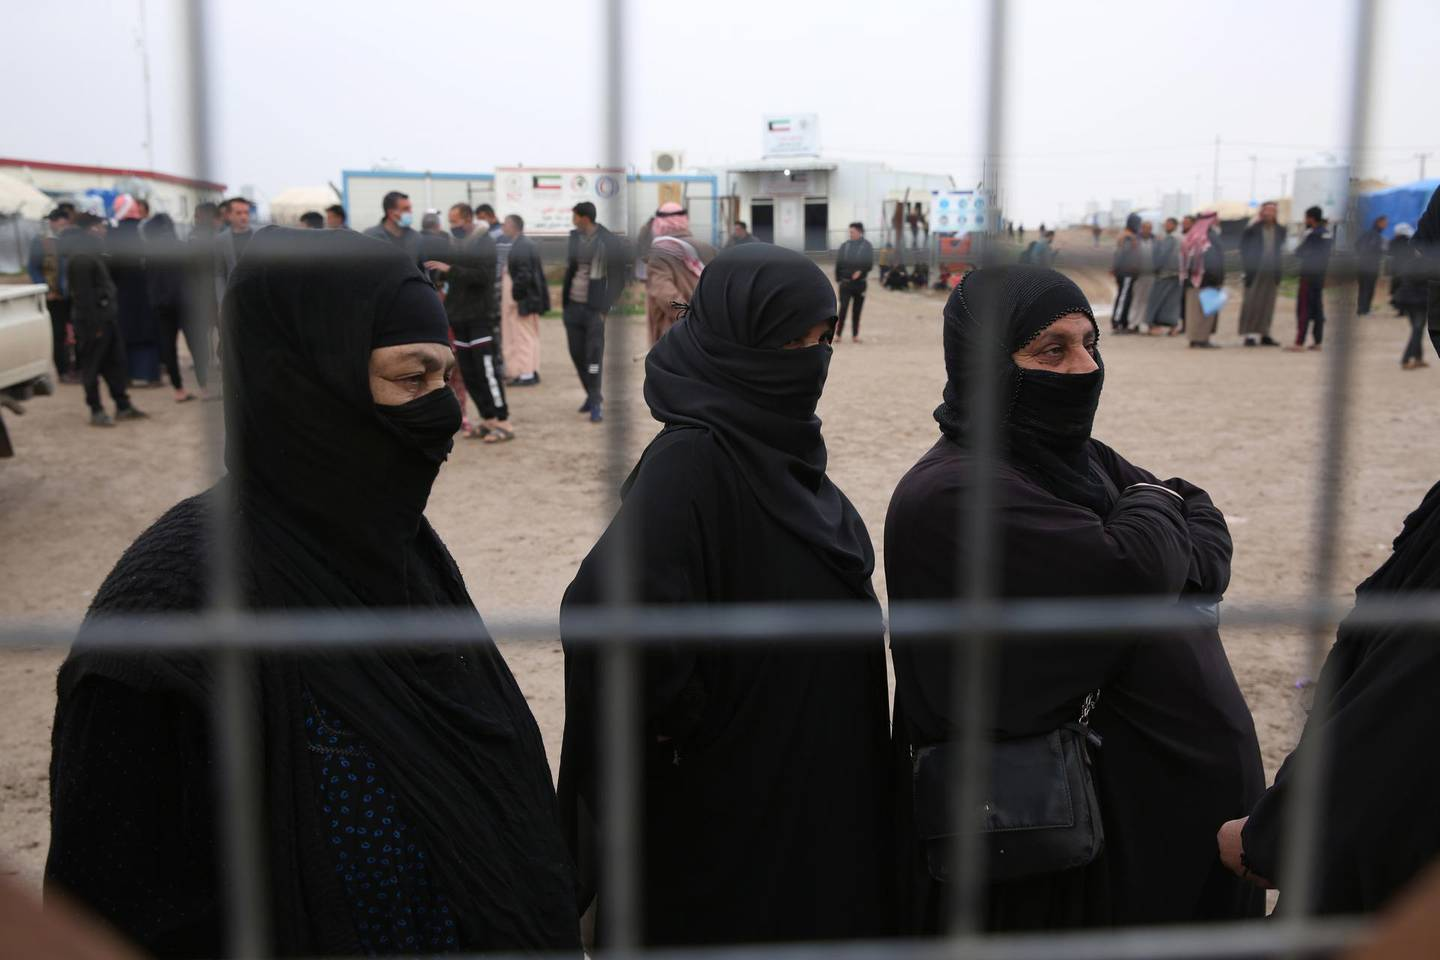 epa08889957 Iraqi Internally Displaced Persons (IDP) wait to get personal Identification cards and birth certificates for their children who were born under the rule of the Islamic State (IS) militants, at Hassan Sham camp for displaced people, east Mosul, Iraq, 17 December 2020. According to estimates, thousands of Iraqis who used to live in the areas ruled by the Islamic State militants between 2014 and 2017 are now seeking to issue official birth certificates for their children, Identification cards and marriage licenses that would allow them to get government services including health care and education.  EPA/GAILAN HAJI